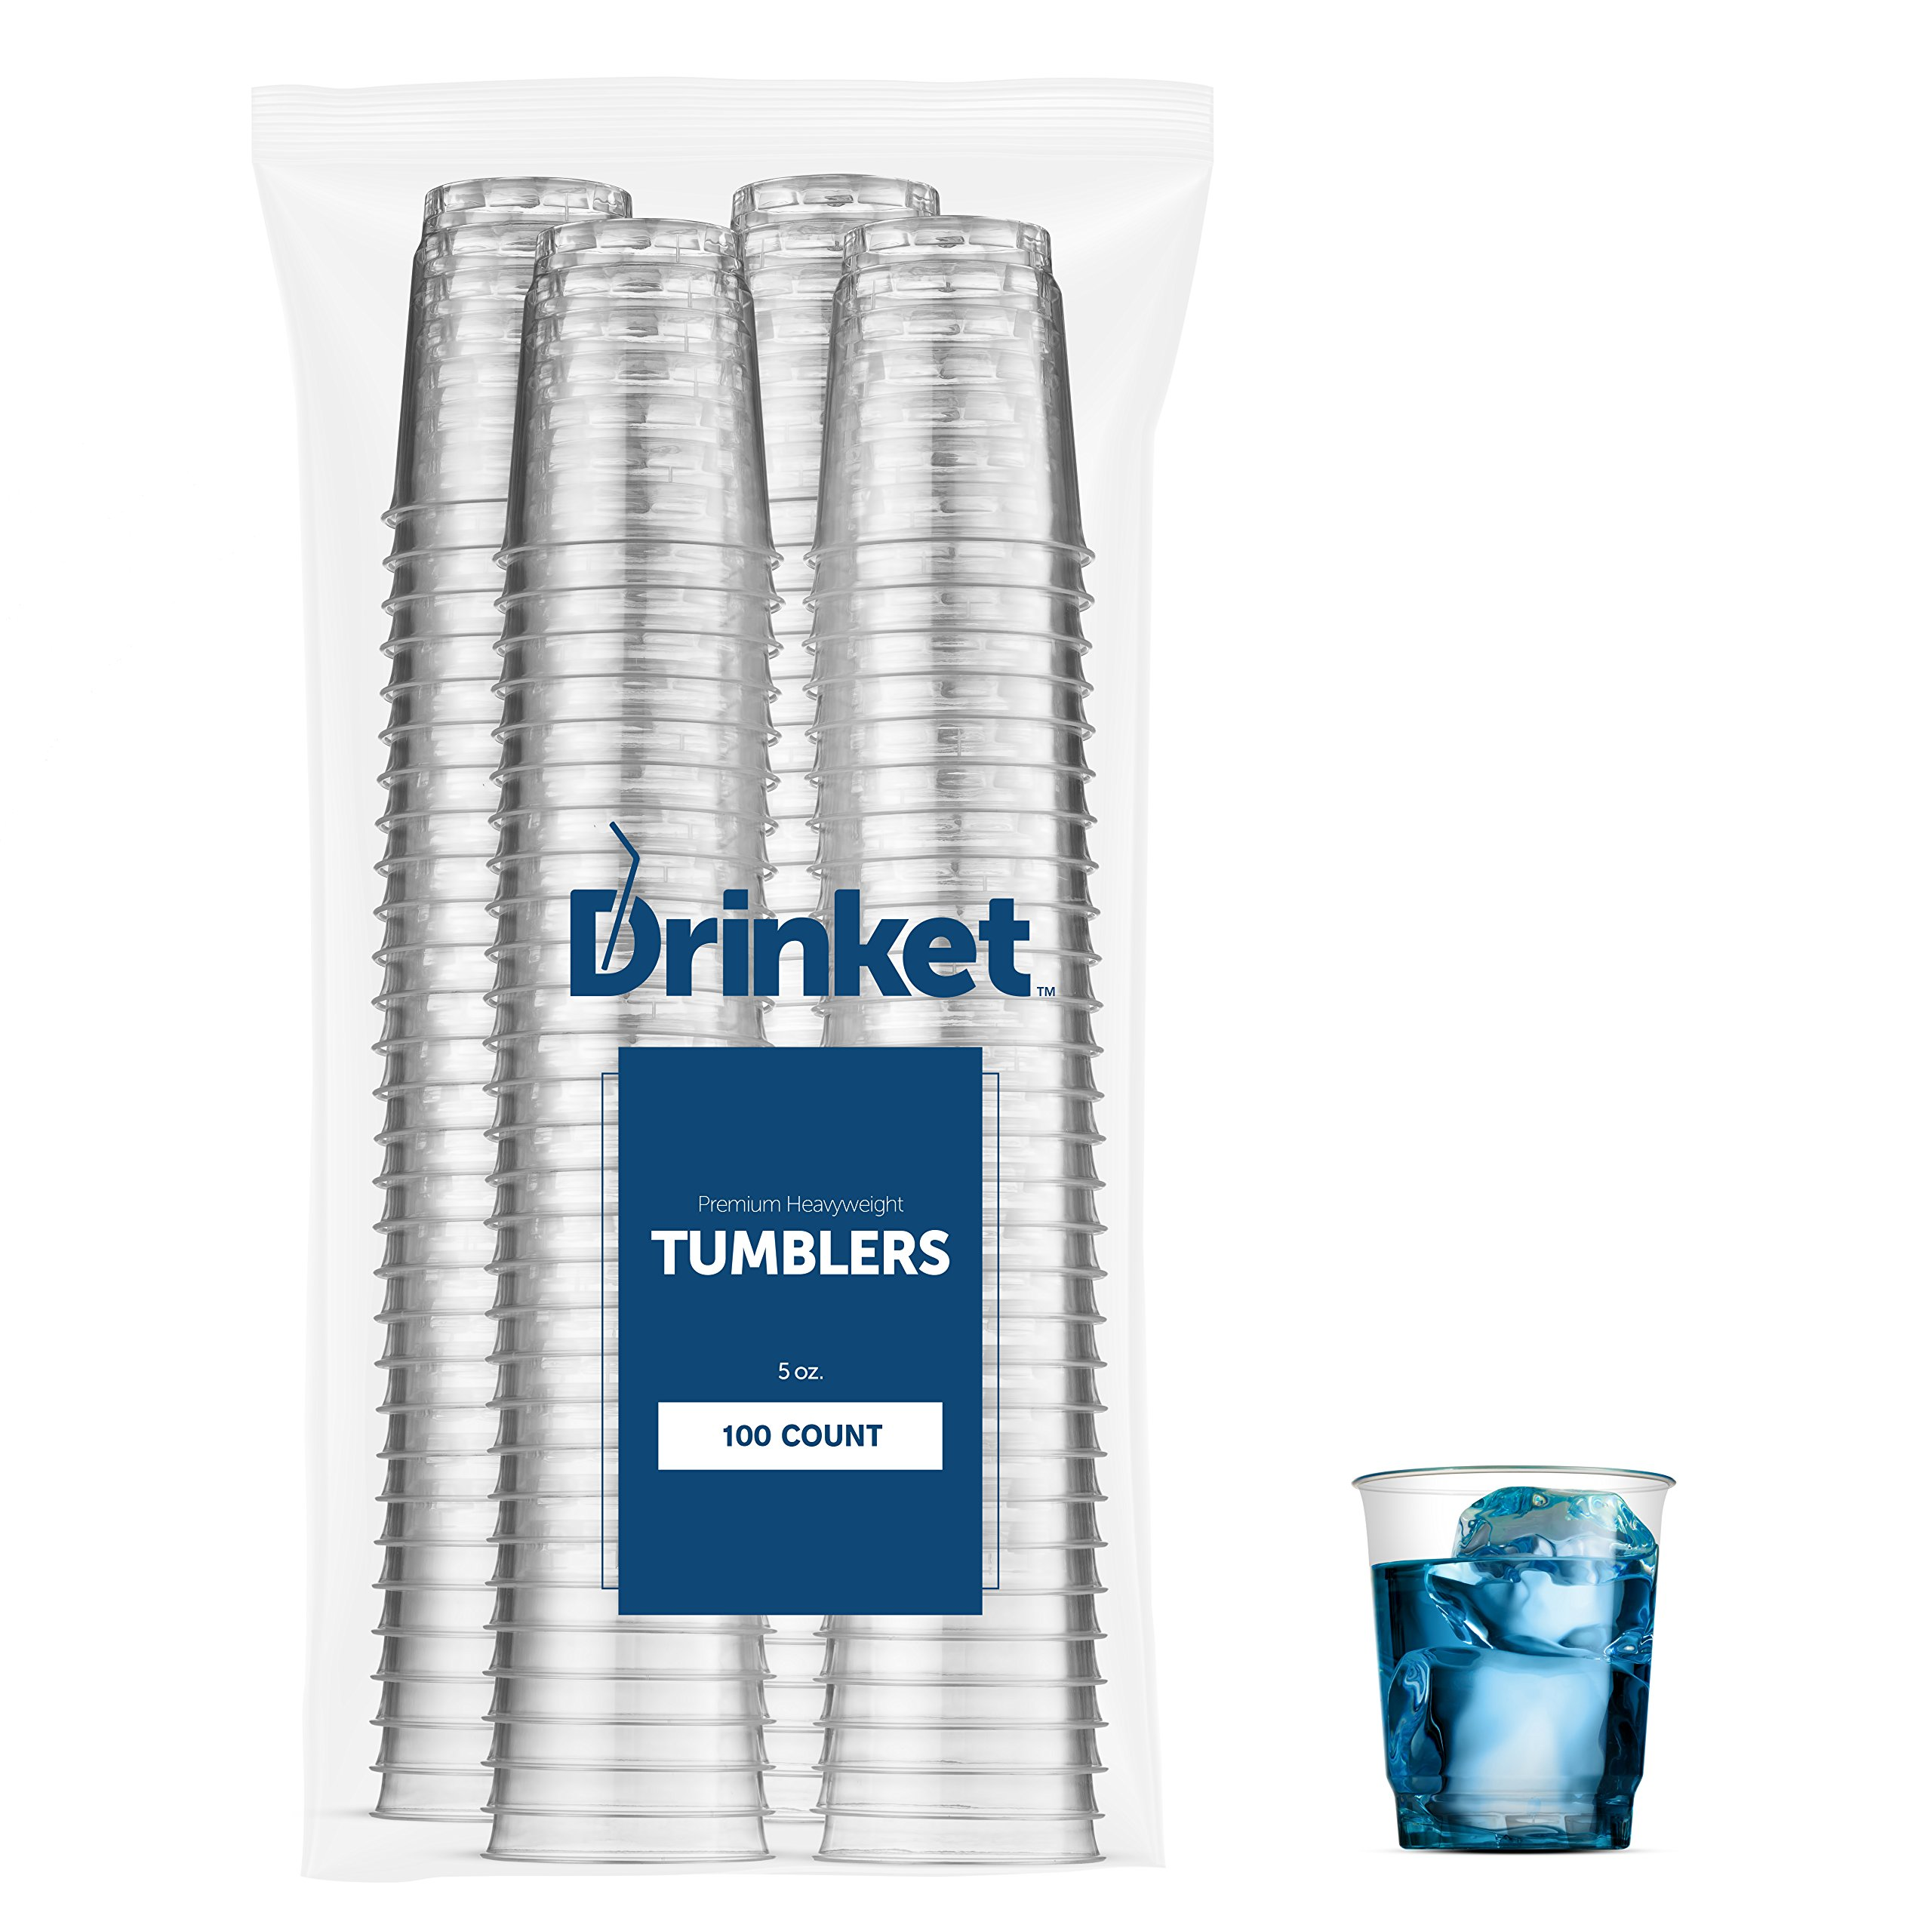 DRINKET Heavy Duty Crystal Clear Glasses Round Hard Plastic Cups 5 Oz Tumblers 100 Count Bulk Pack Disposable / Reusable | Essential Wine Champagne Flutes Cocktail, Everyday Drinking Cup